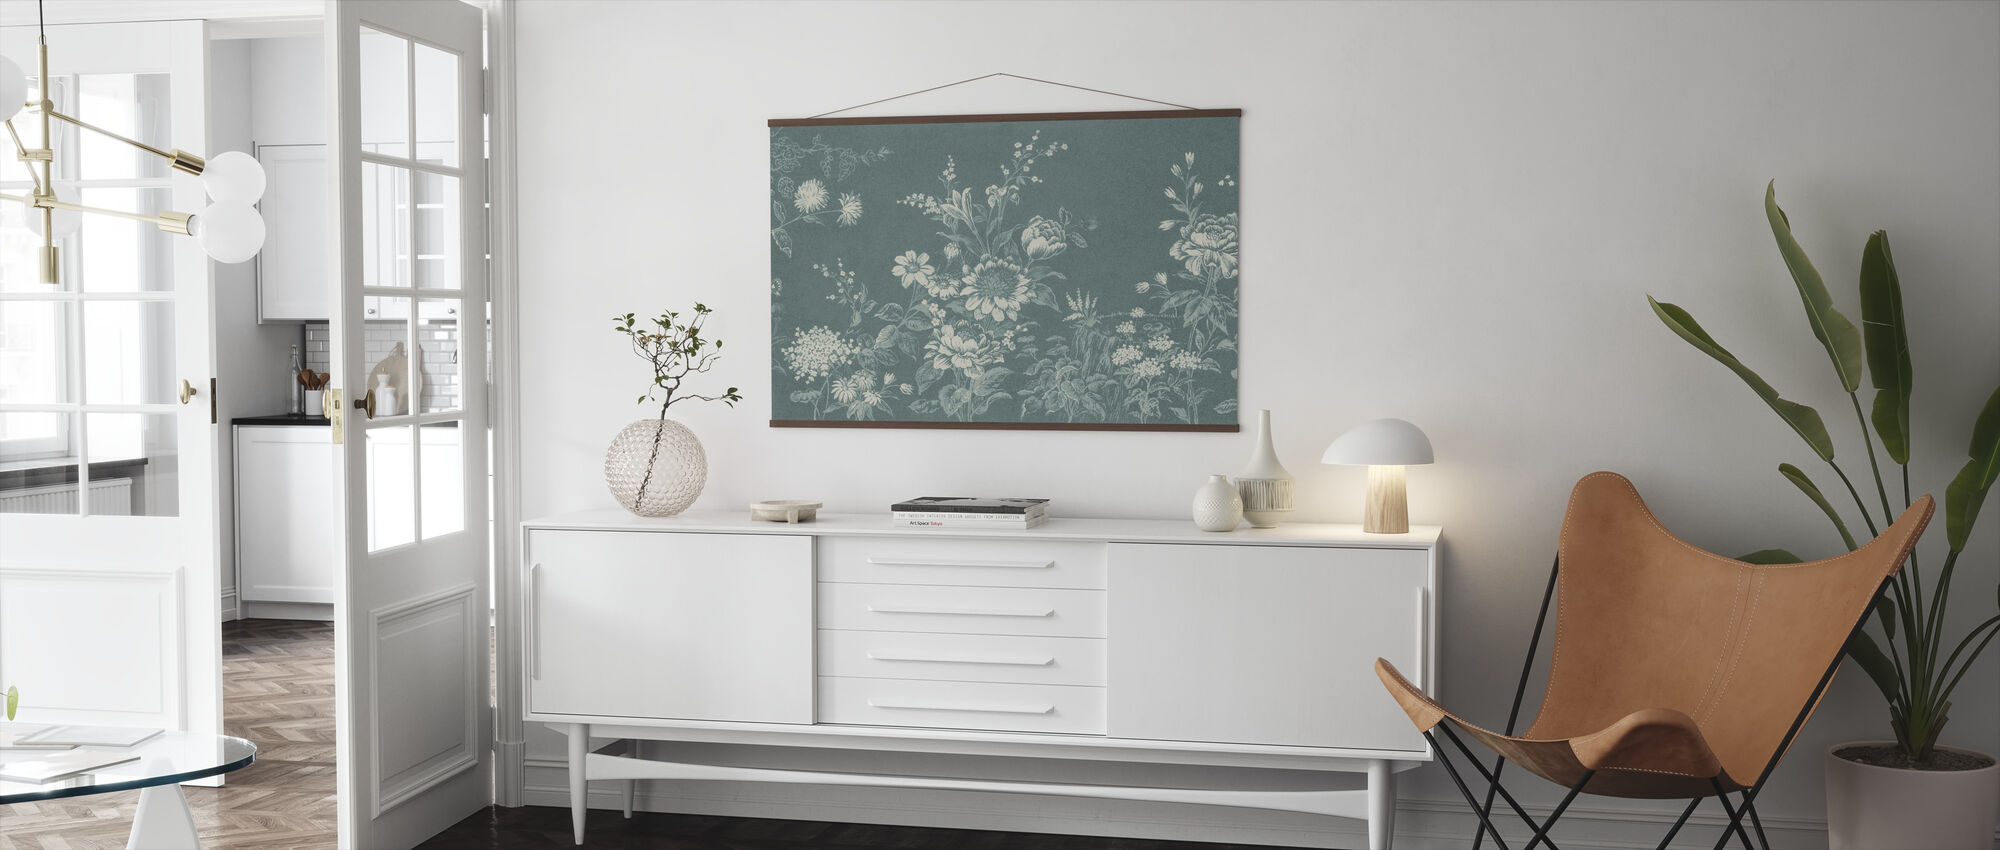 Greenery - Poster - Living Room